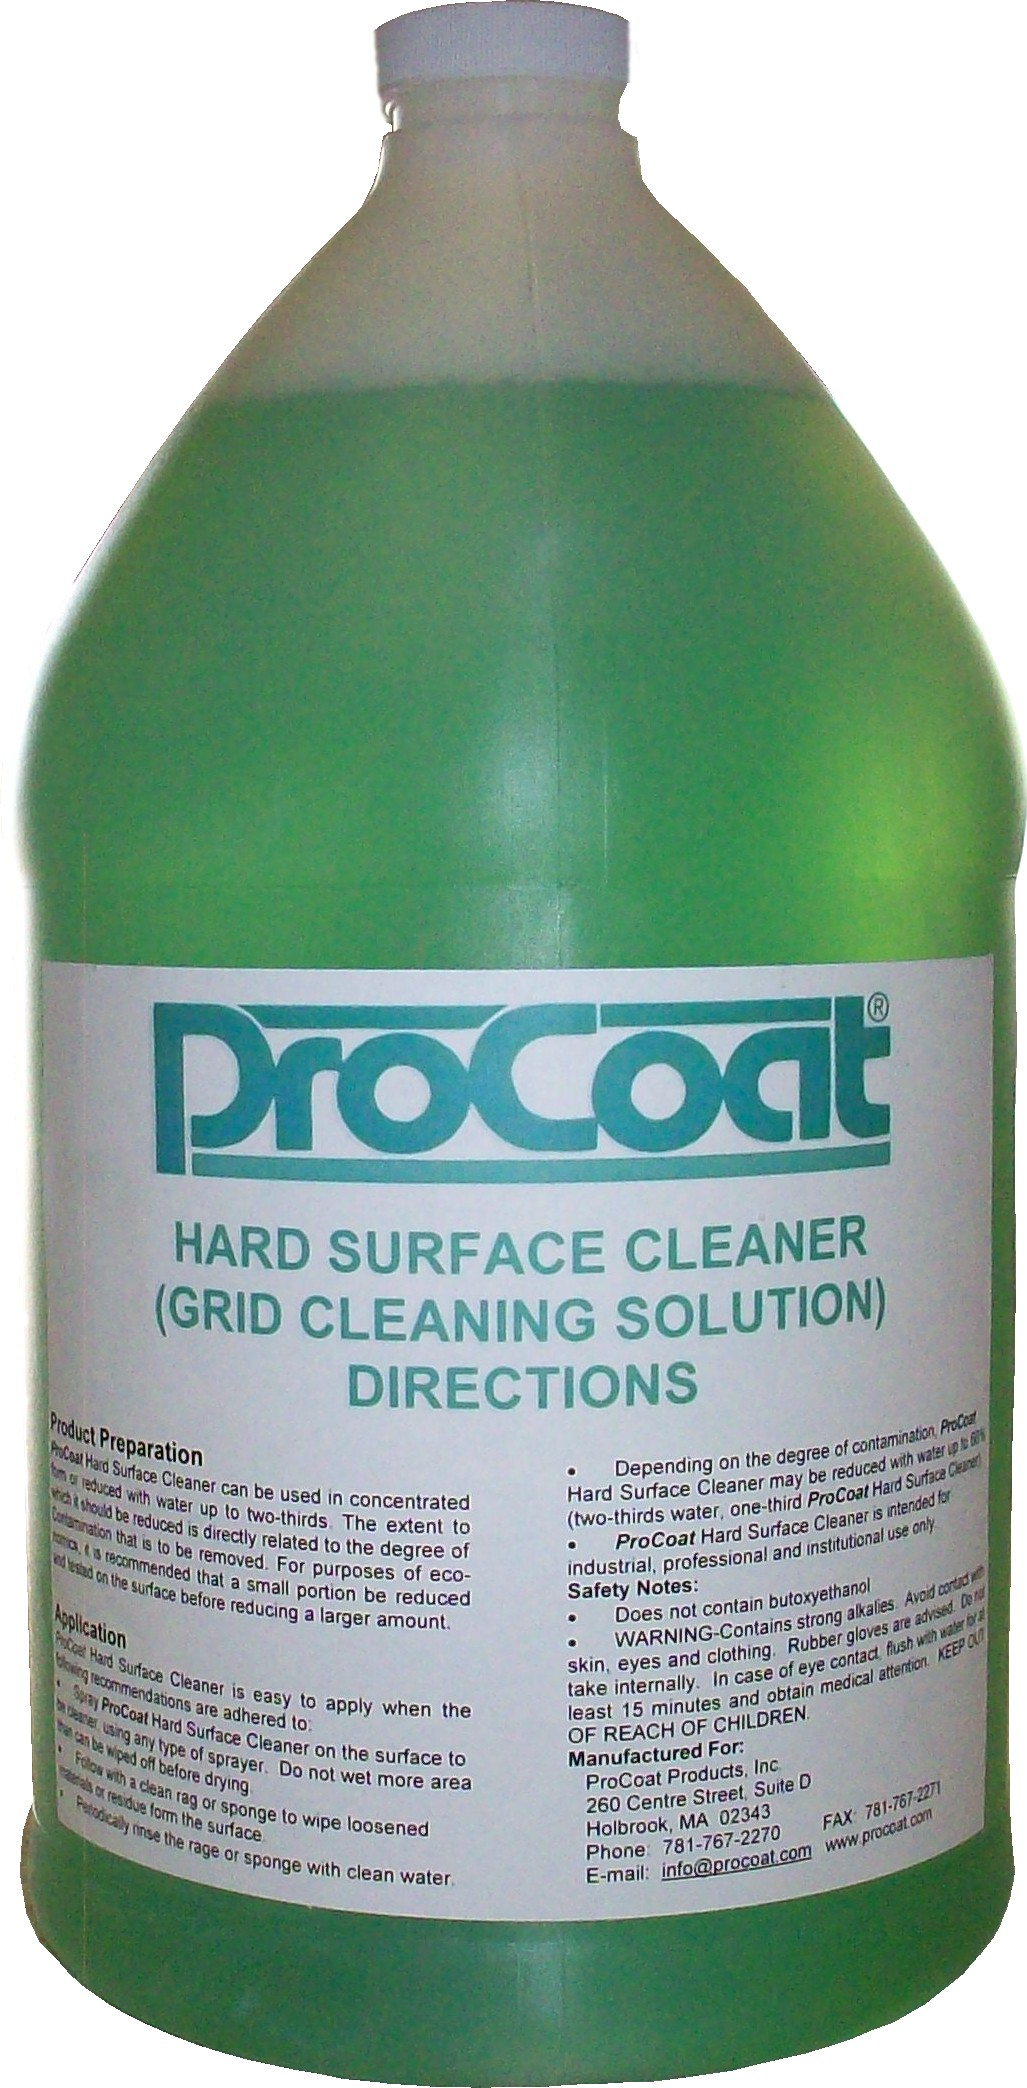 ProCoat Products, Inc. ProCoat Product Line - ProCoat ...